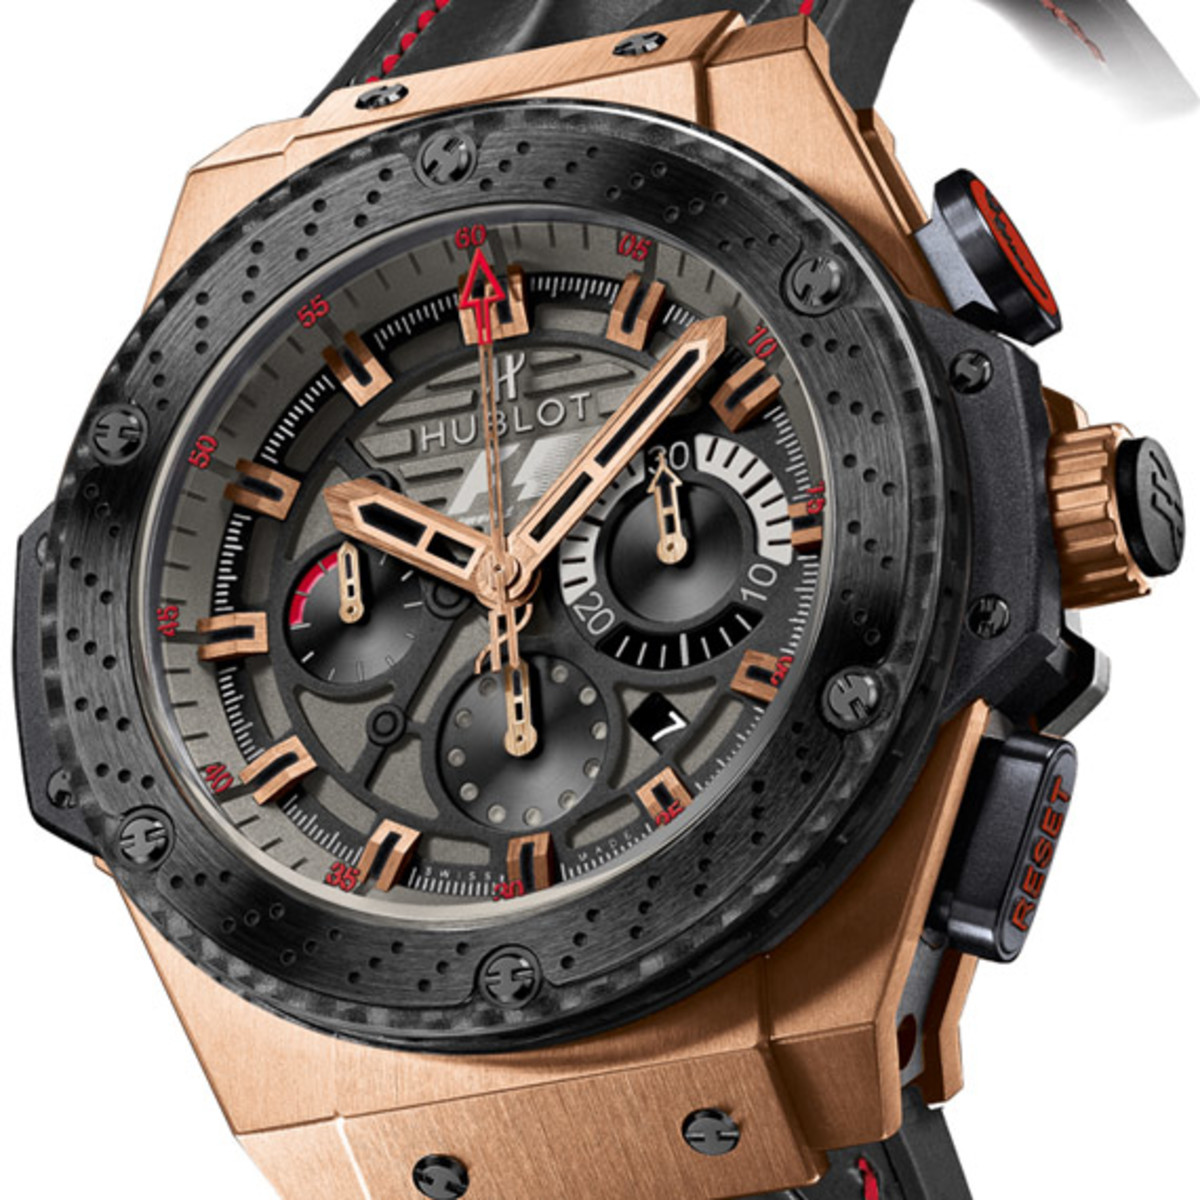 f1-racing-hublot-formula-1-king-power-great-britain-chronograph-02